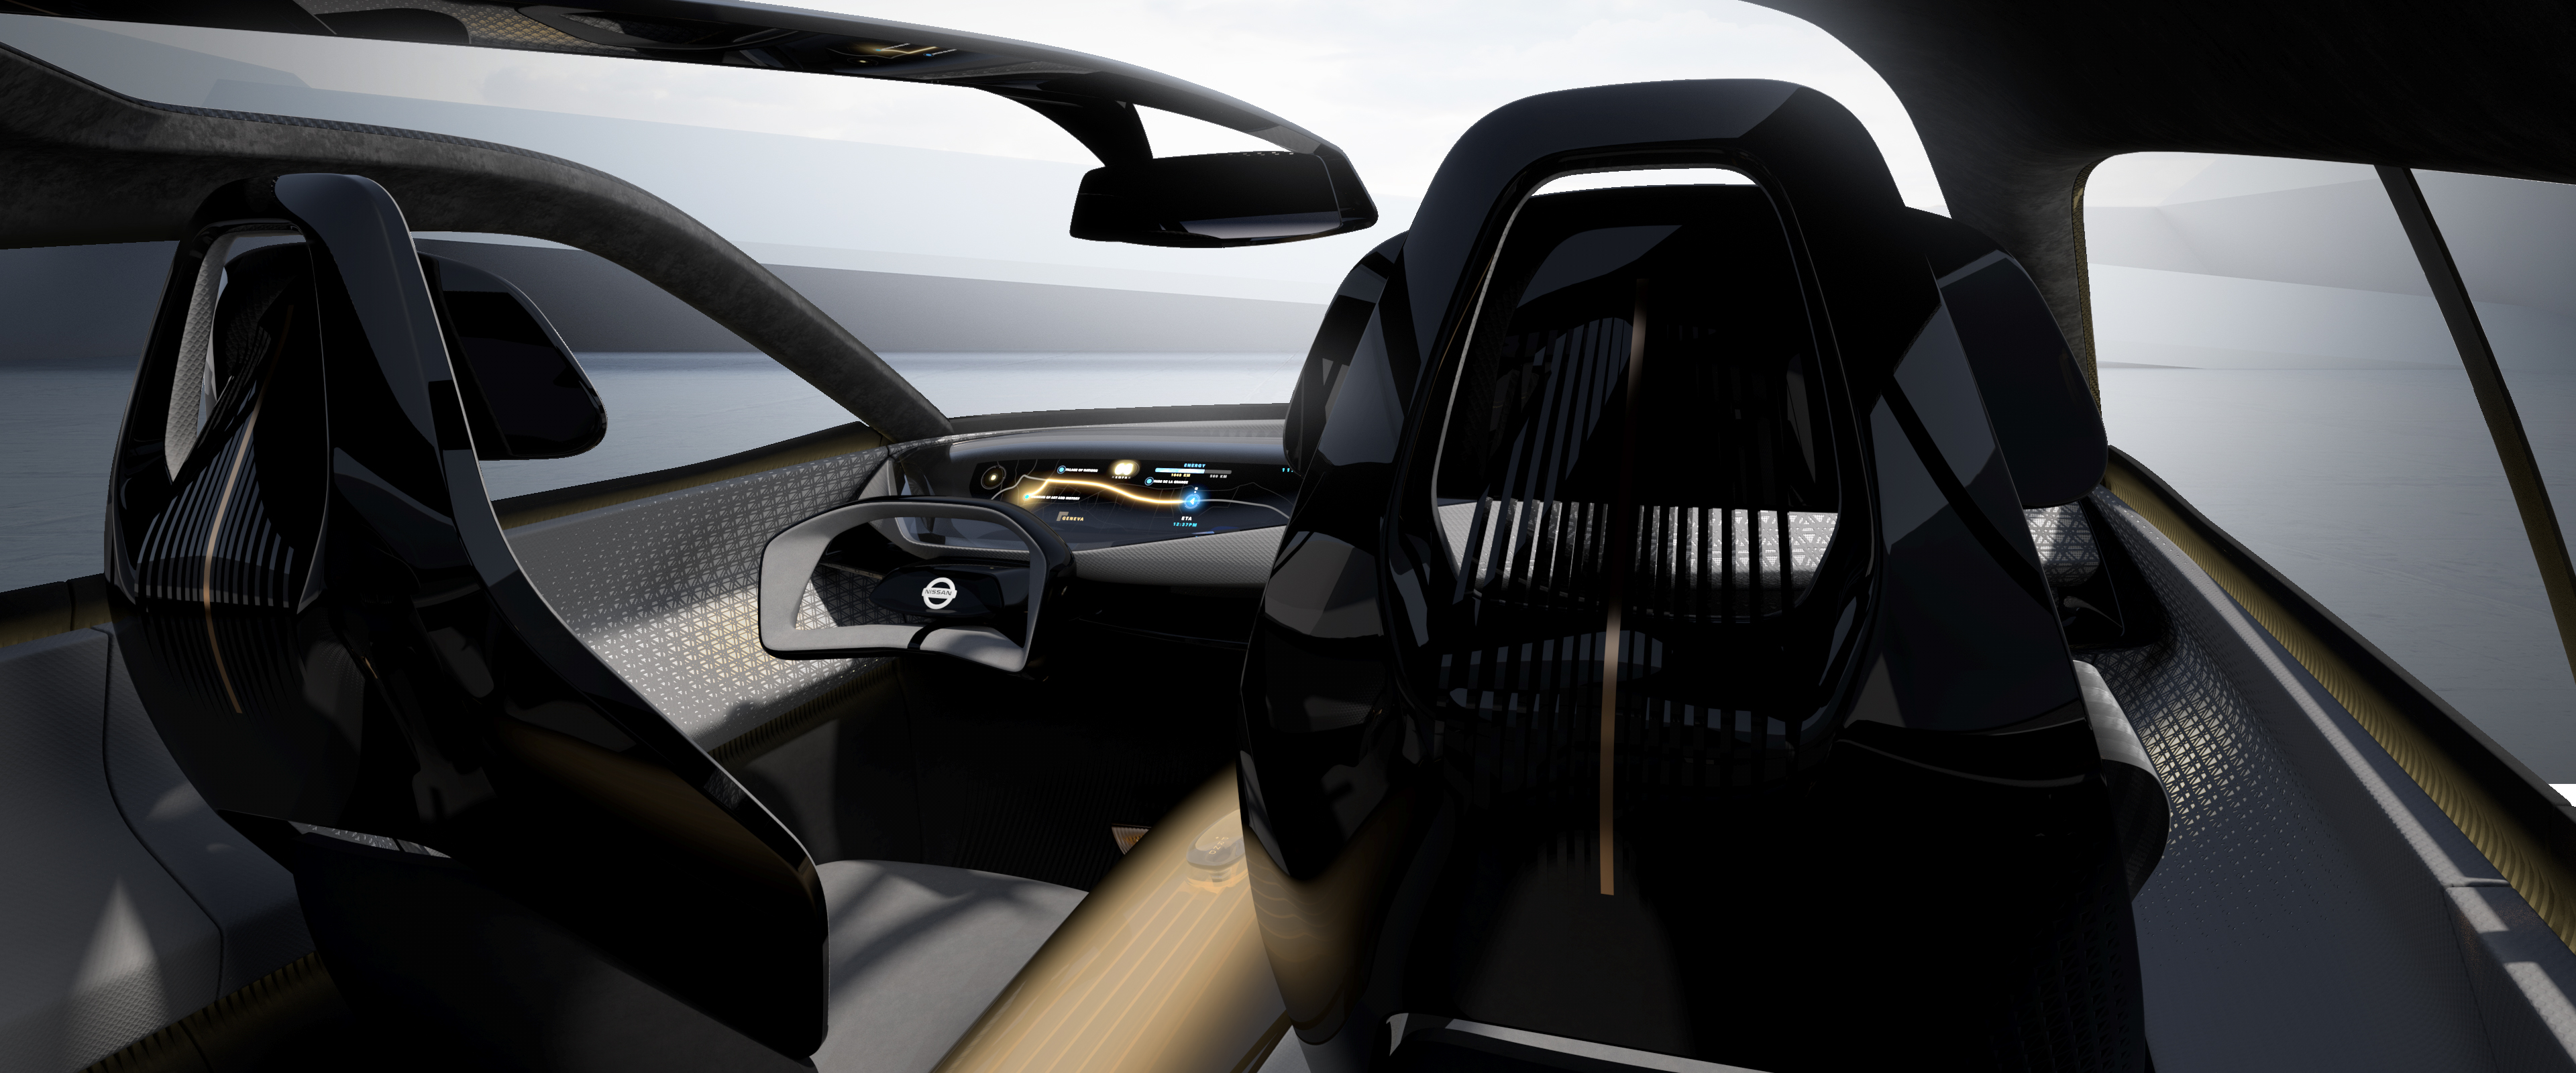 IMQ Concept car Interior 17-source